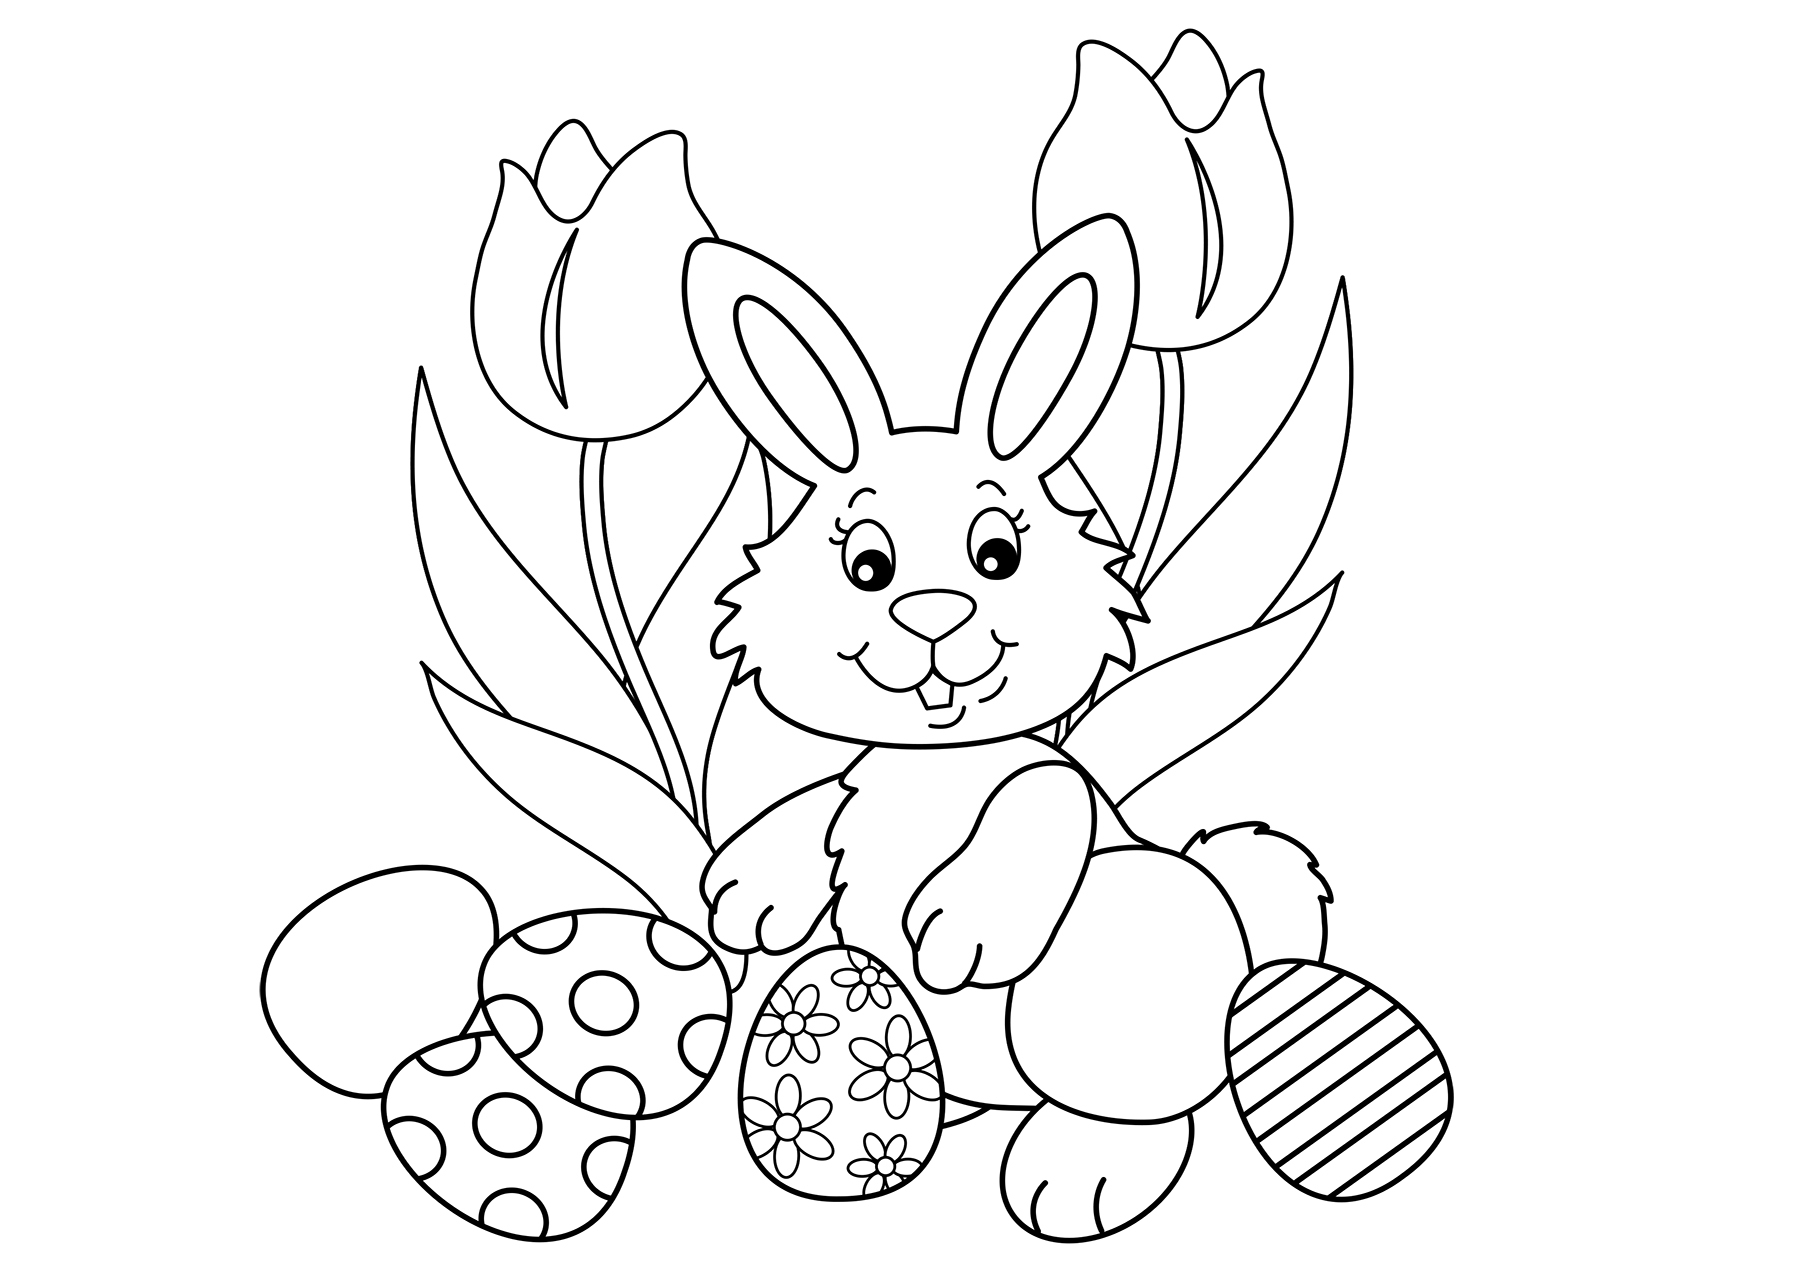 Select your favourite easter eggs coloring pages below